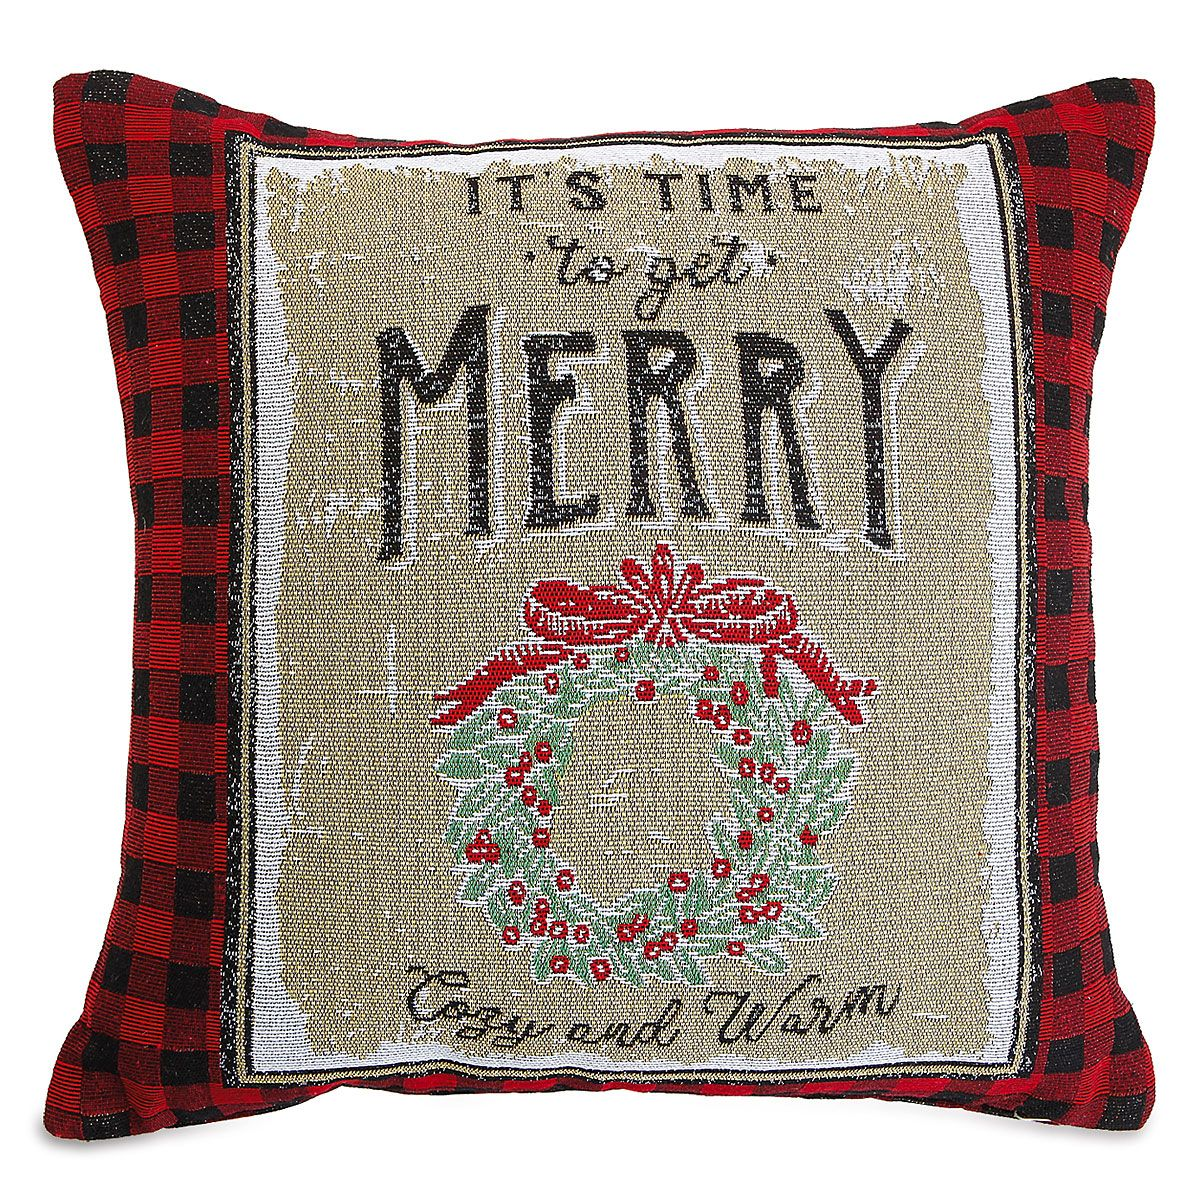 Get Merry Decorative Christmas Pillow